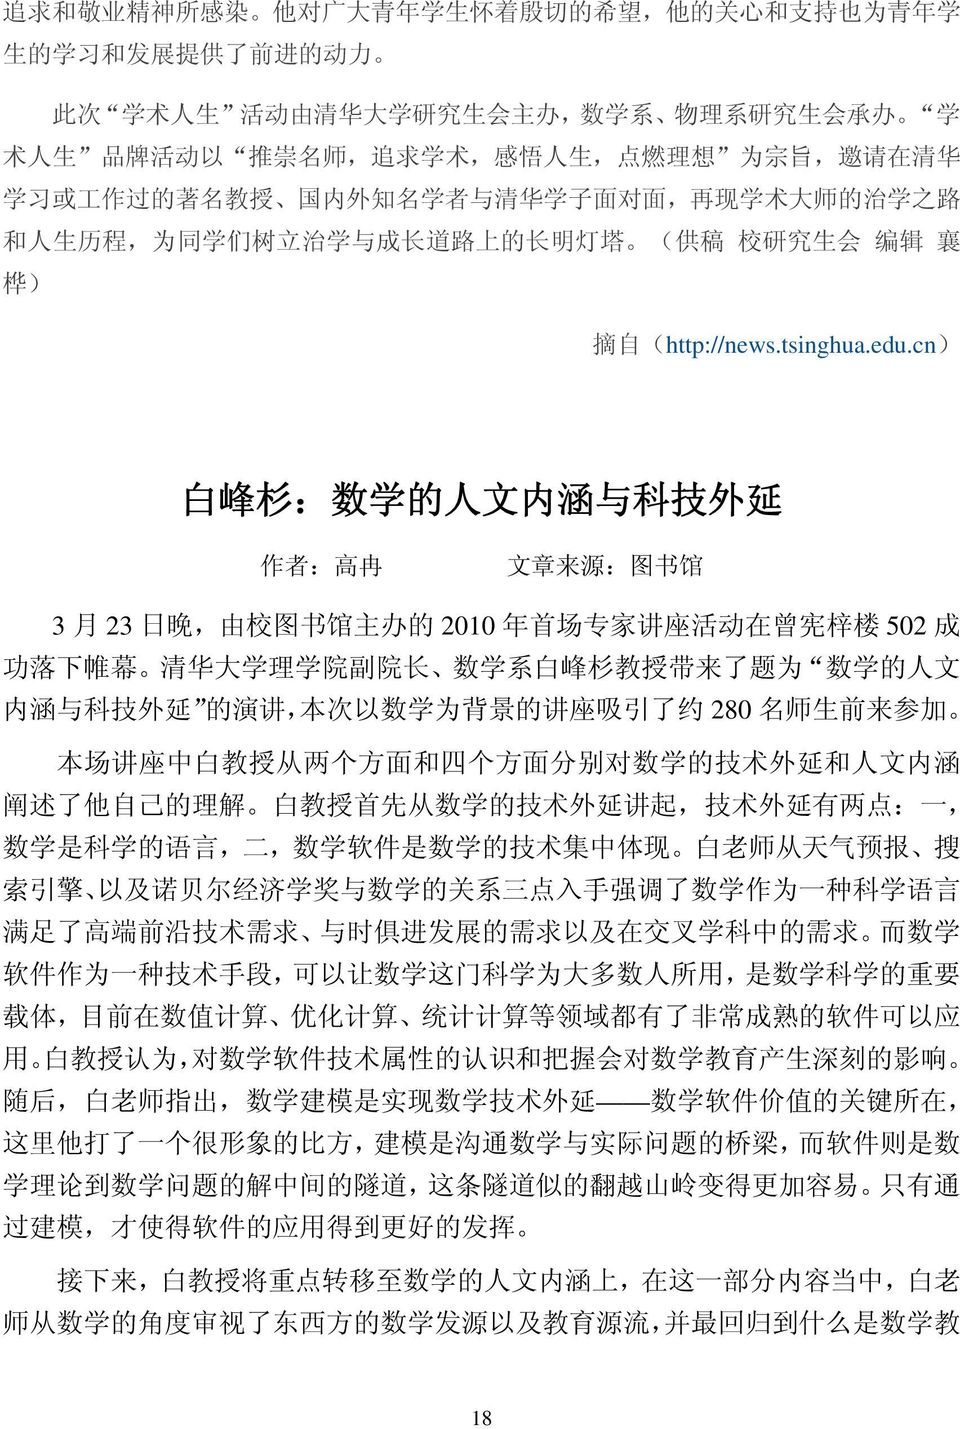 (http://news.tsinghua.edu.